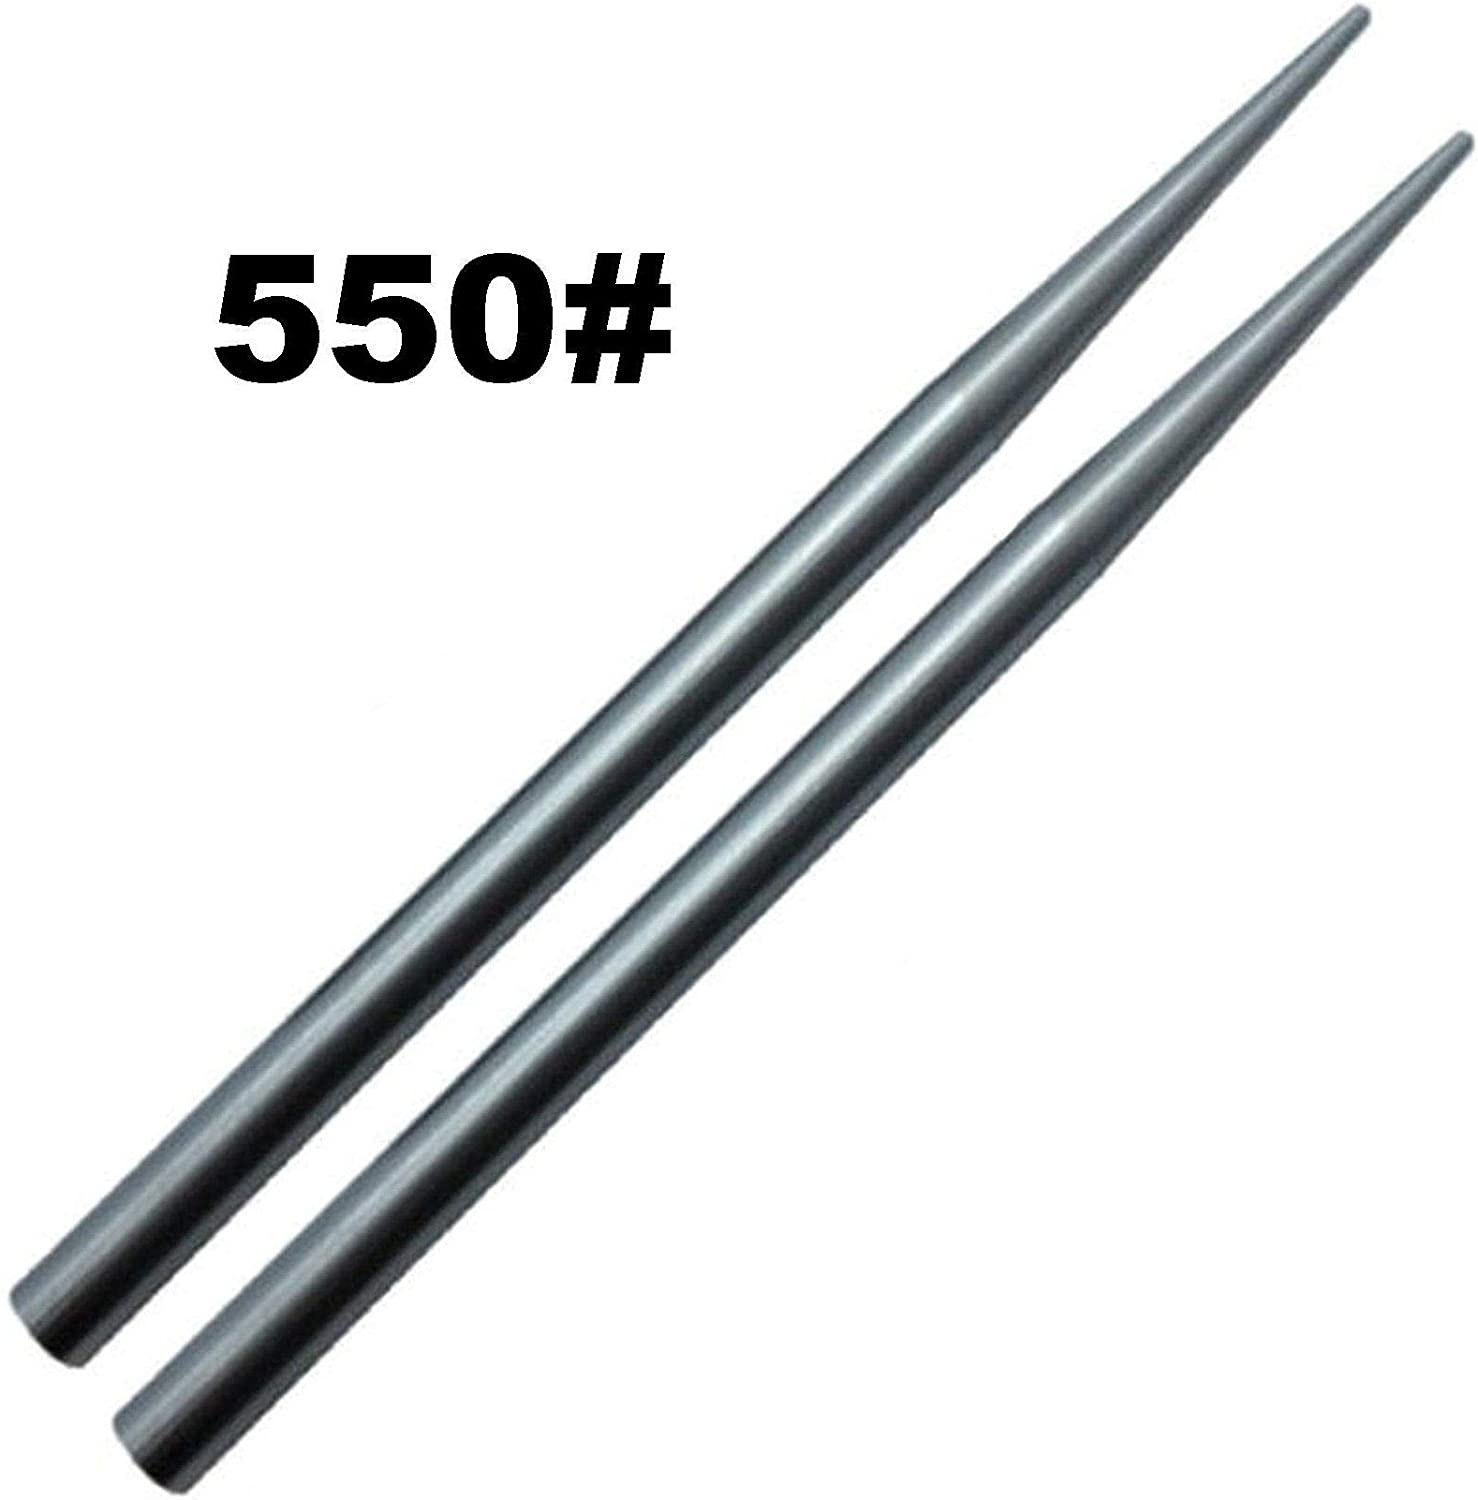 "(2 Pack) von Jig Pro Shop Stainless Steel 3 1/2"" 550 Type Iii Paracord Fid, Lacing, Stitching Needles"